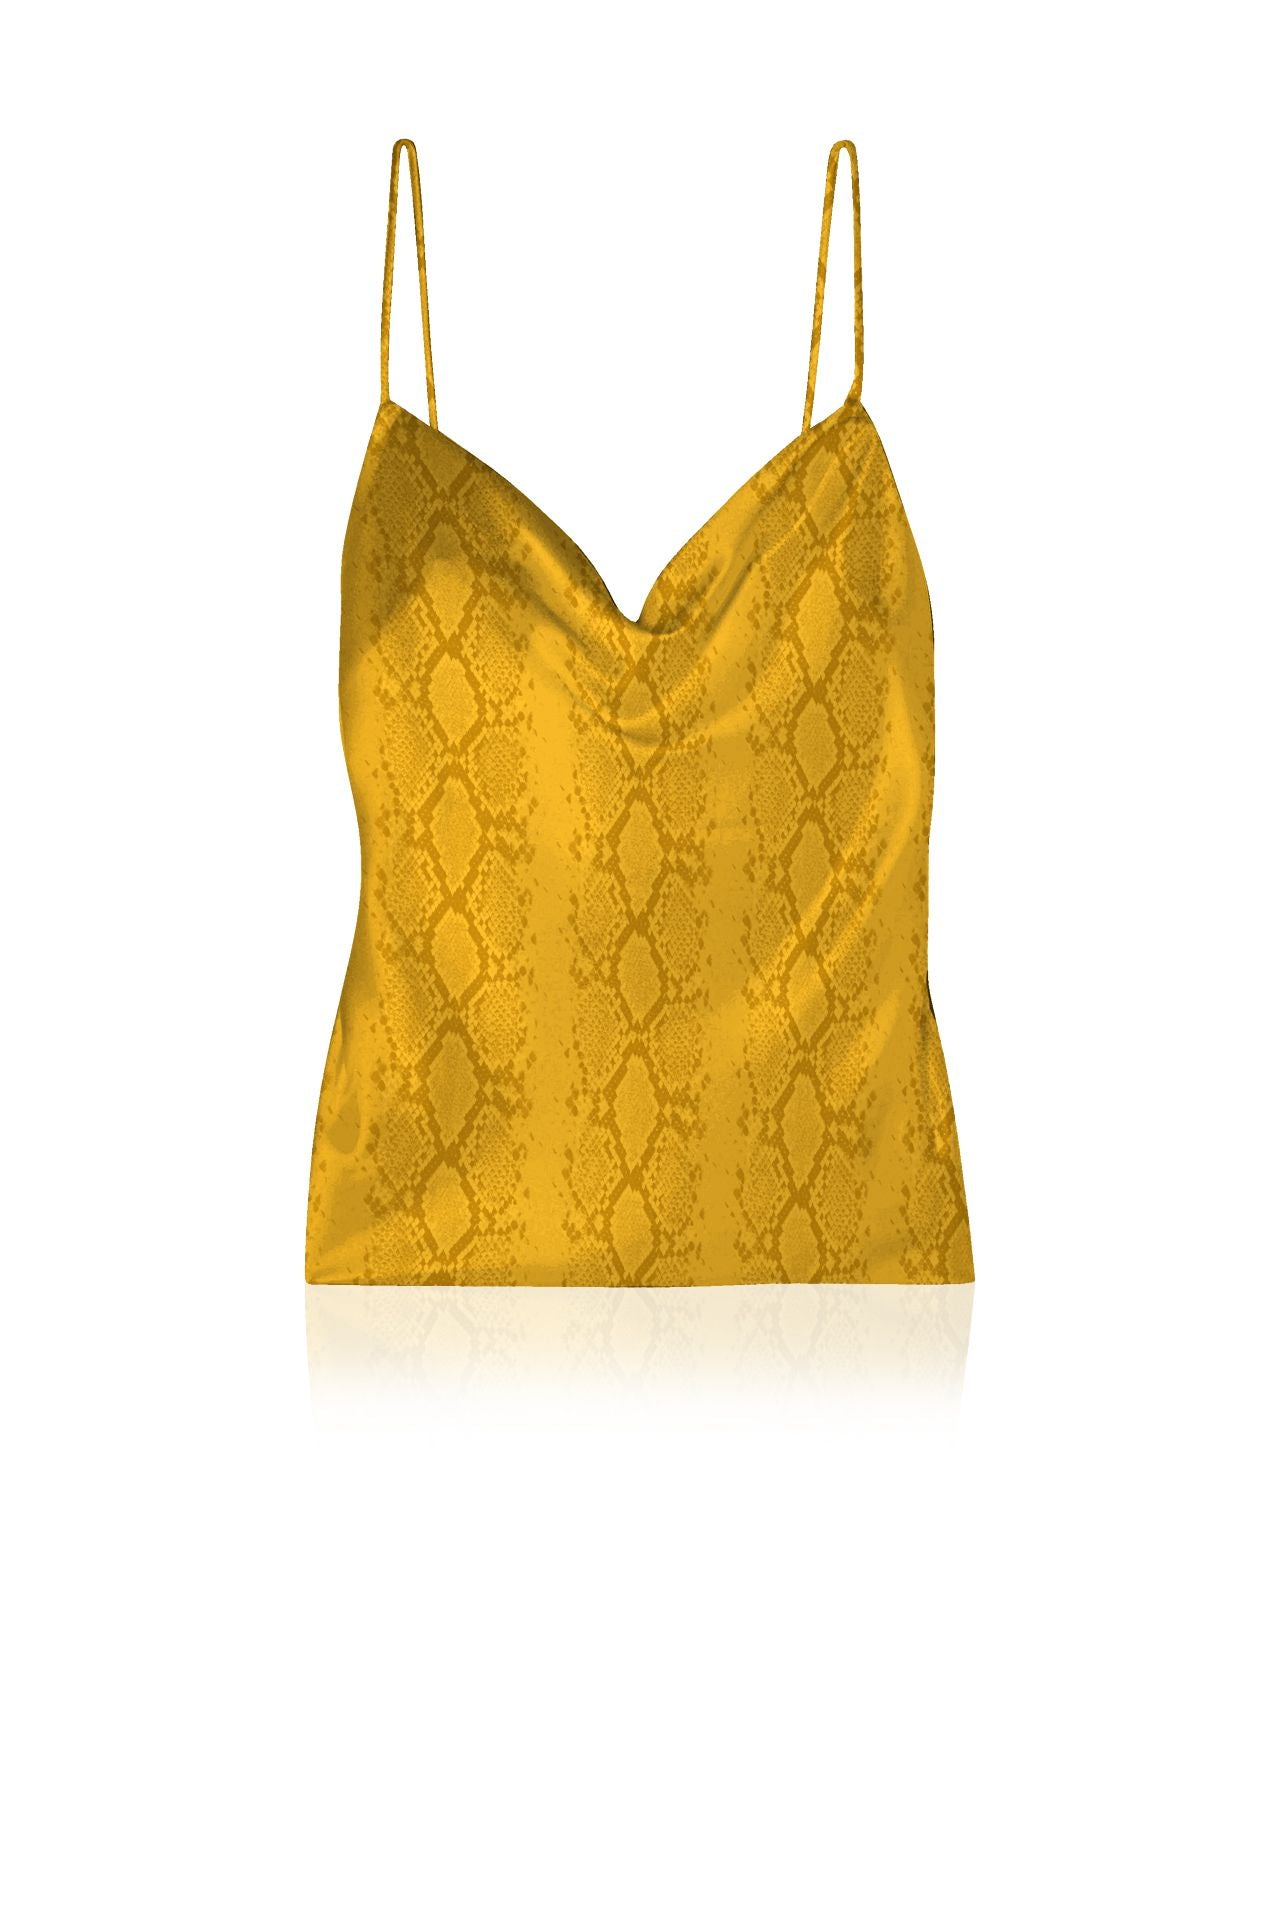 Vegan Silk Cami Top in Solid Golden Cob